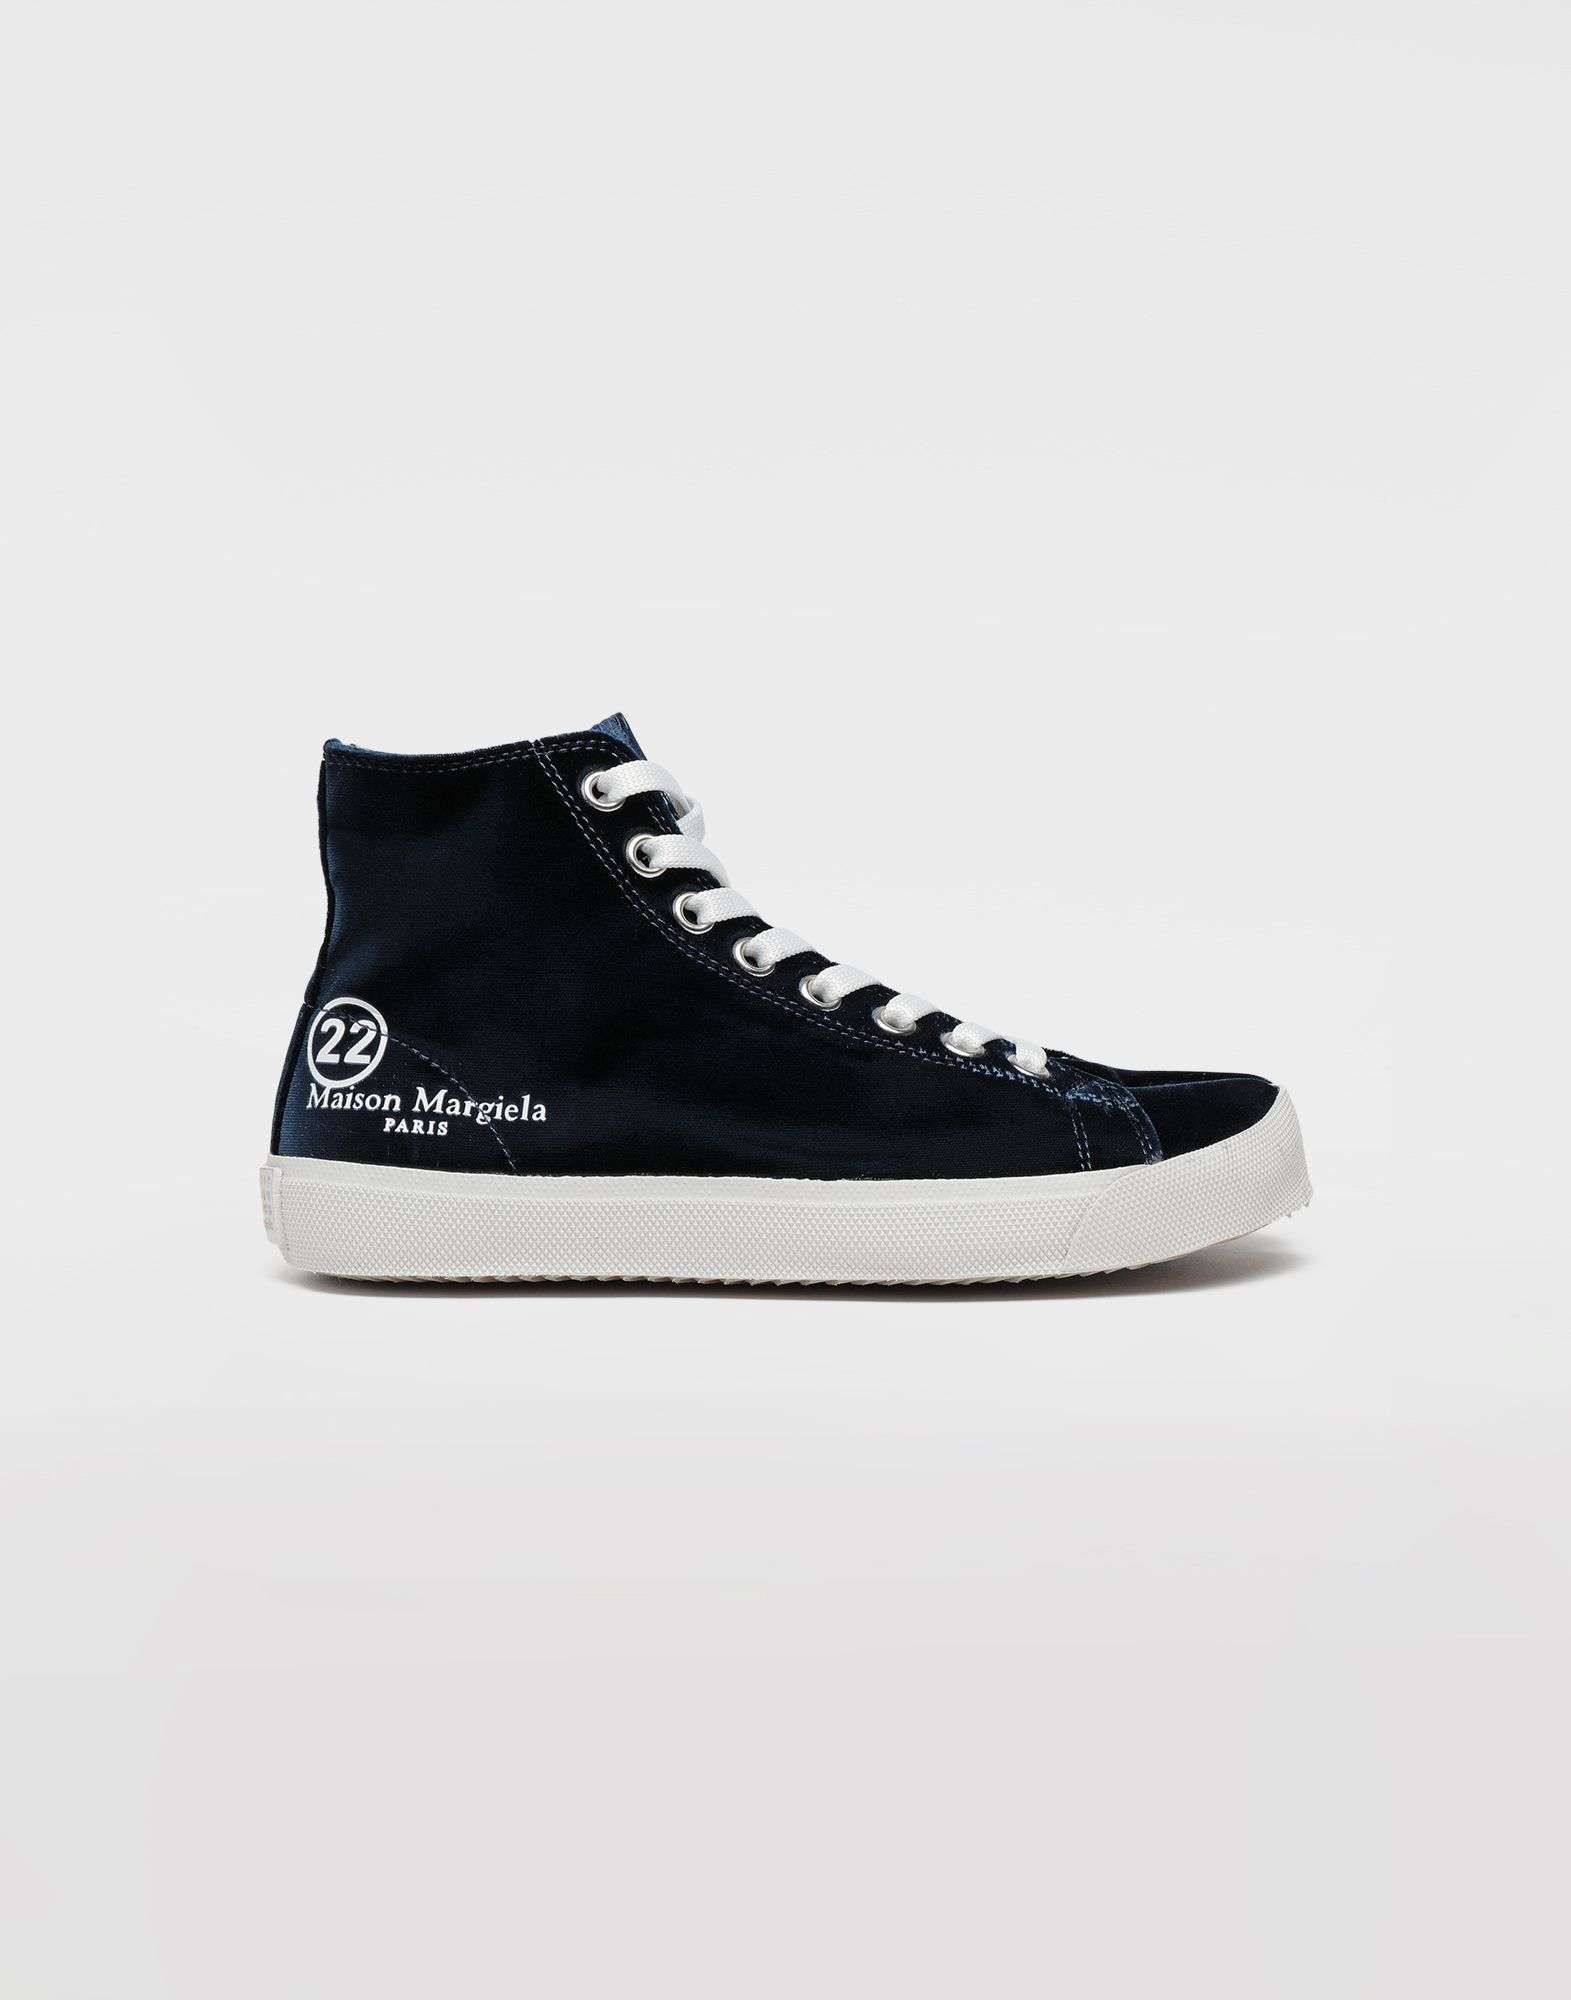 MAISON MARGIELA Tabi high-top velvet sneakers Sneakers Tabi Woman f